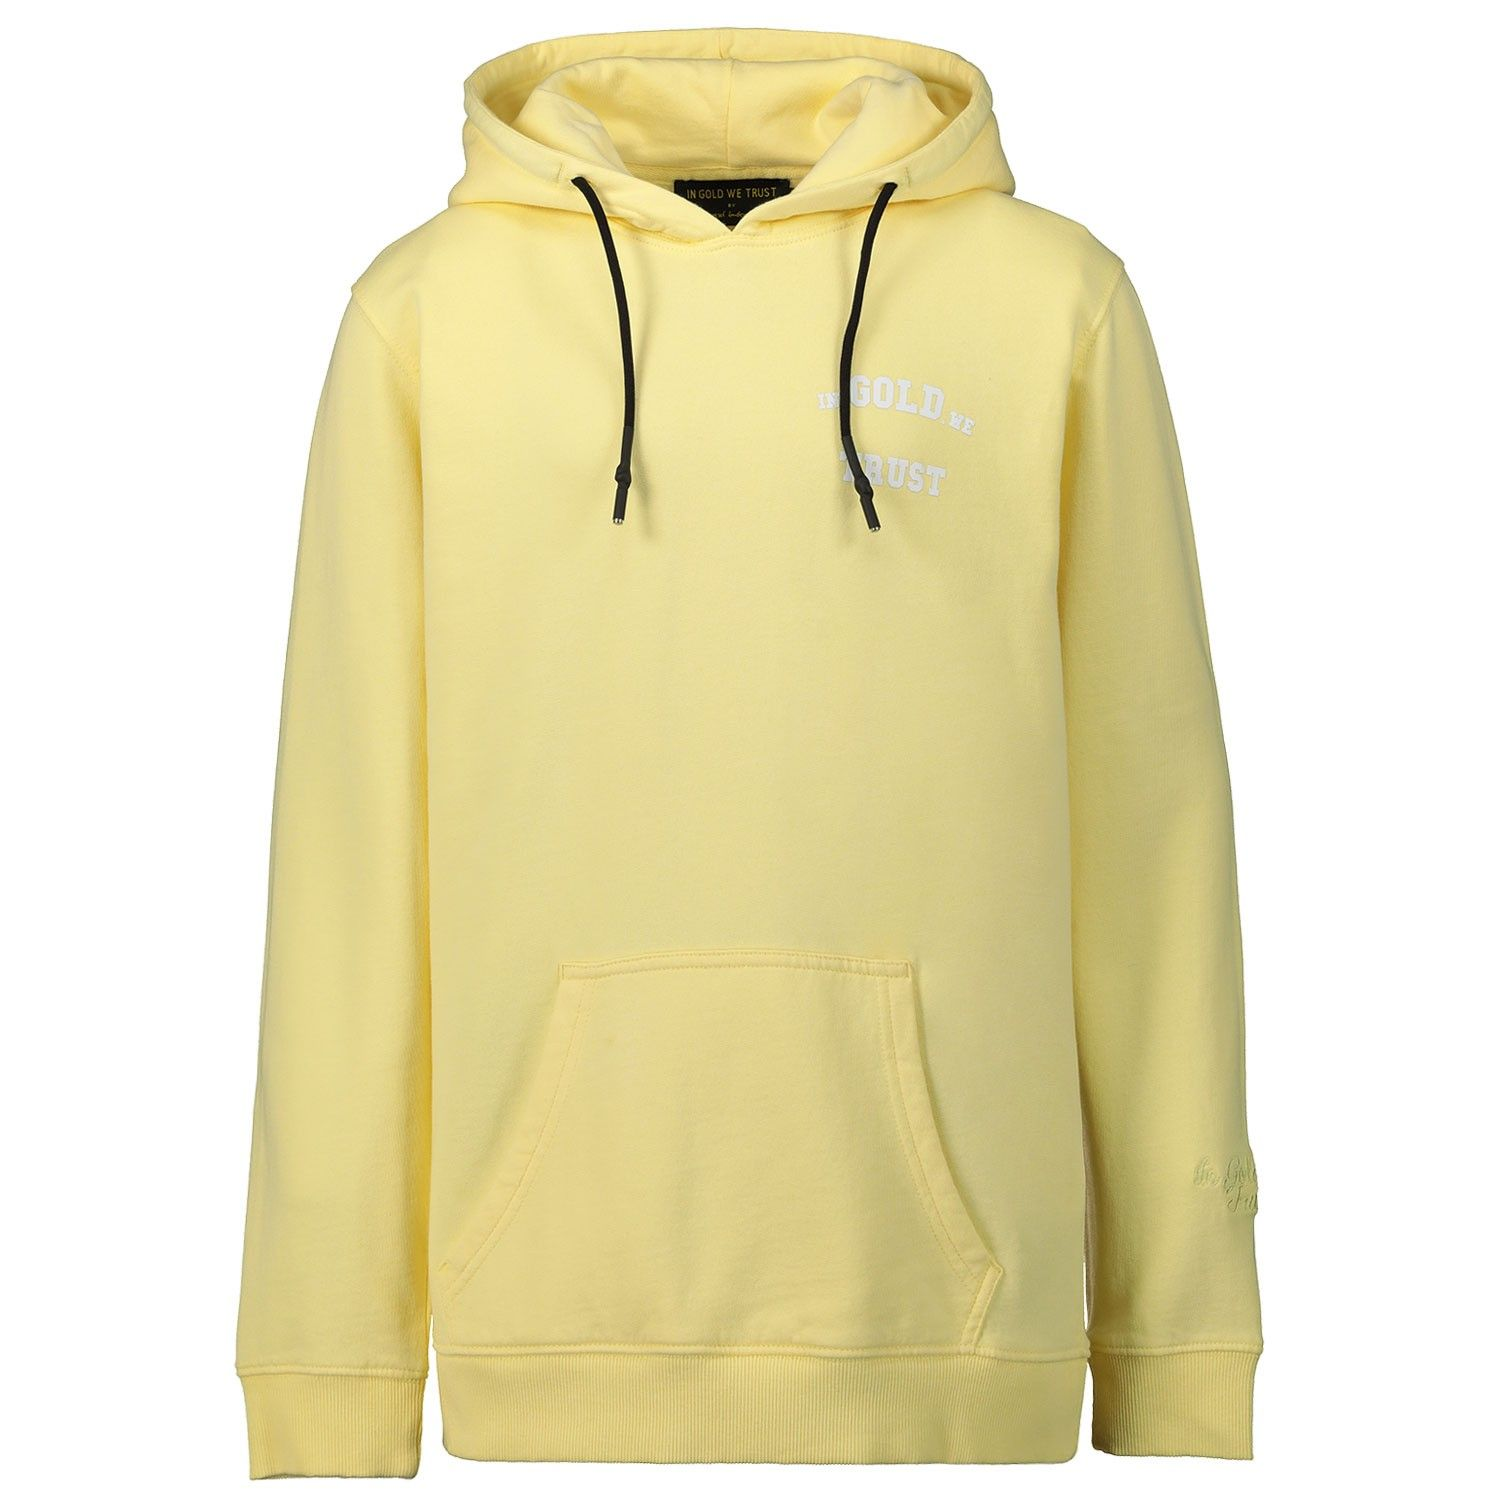 Bild von In Gold We Trust KIDS BASIC HOODIE